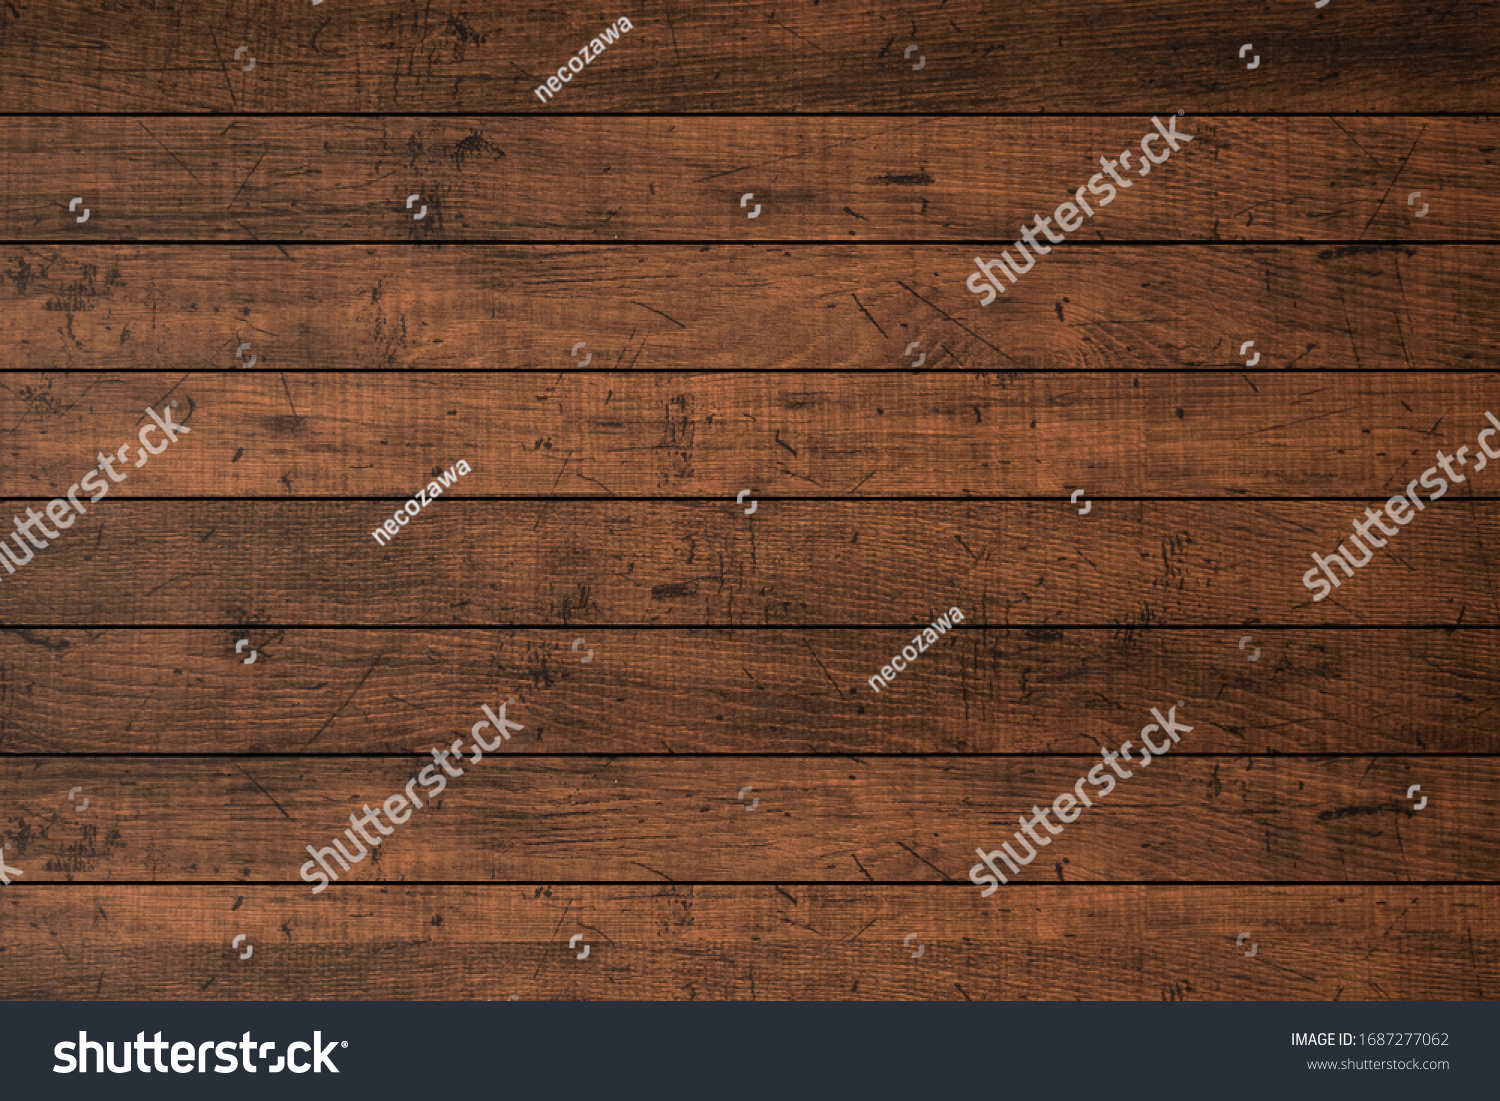 Texture of wood grain,background image #1687277062